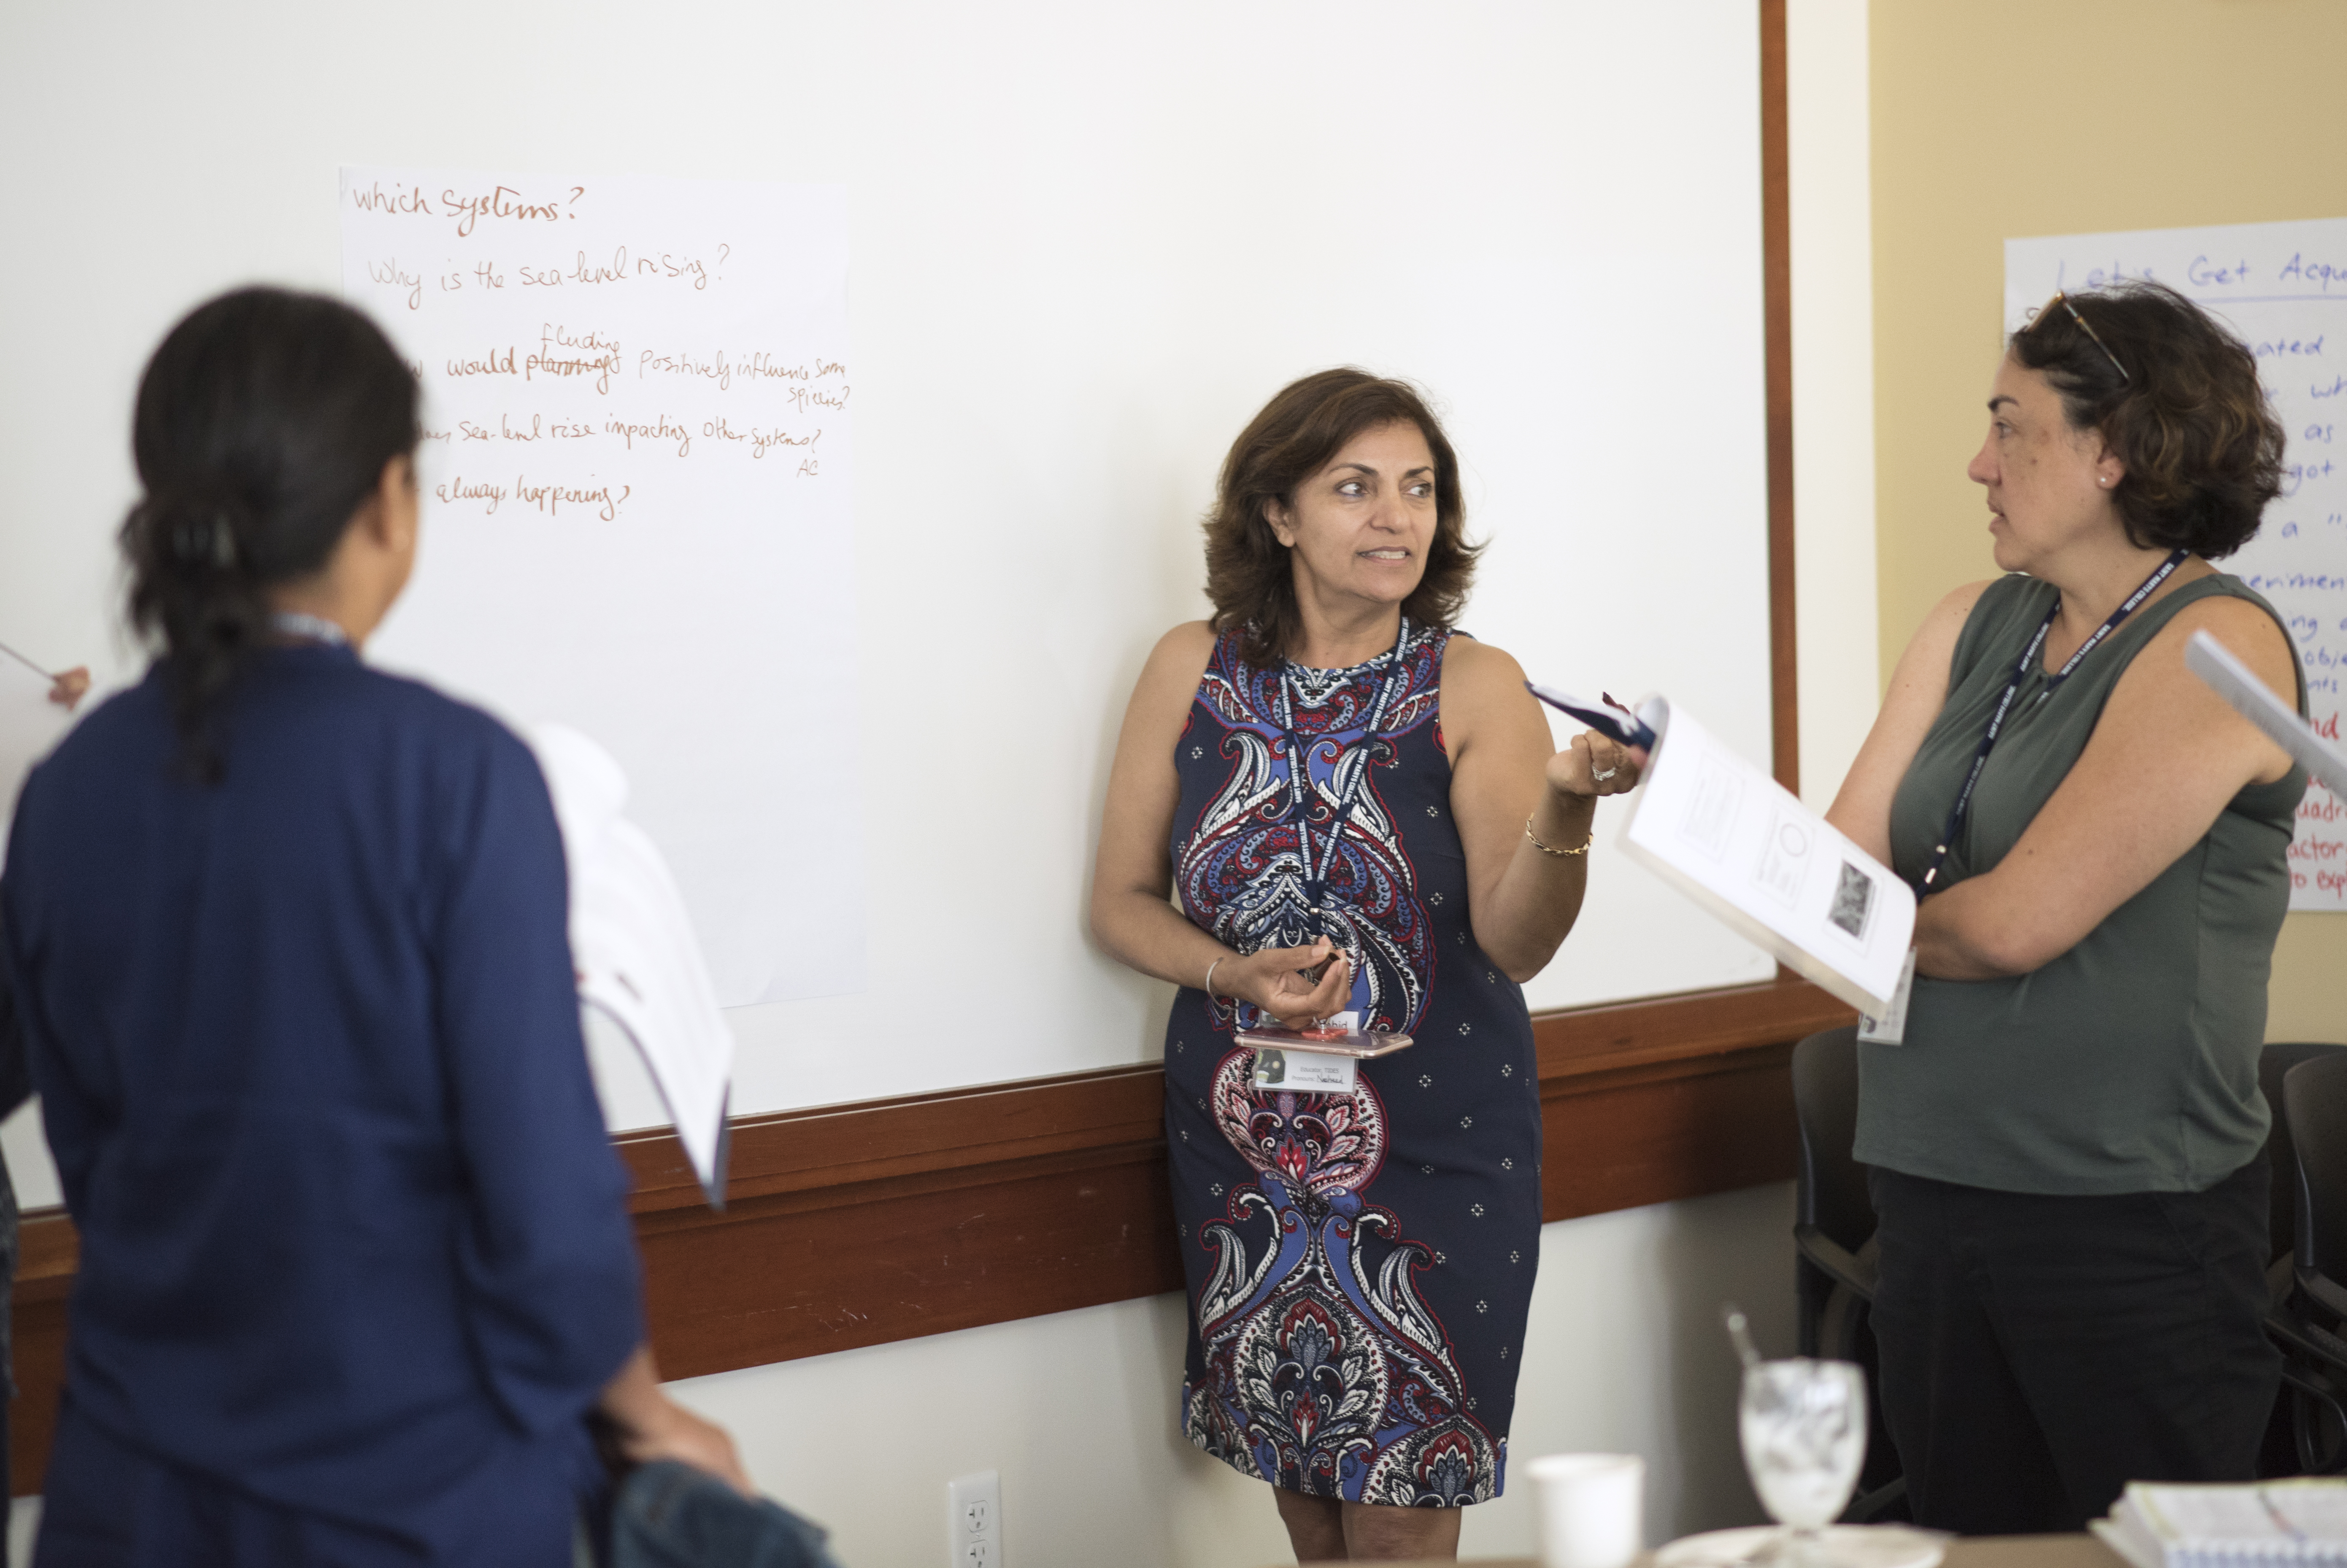 Features Nahid Nariman, specialist fromTIDES(Transformative Inquiry Design for Effective Schools and System), at the 2019 CEL Summer CO-LAB at Saint Mary's College of California: July 26-28th, 2019. Photography by Maureen Esty and Haley Nelson